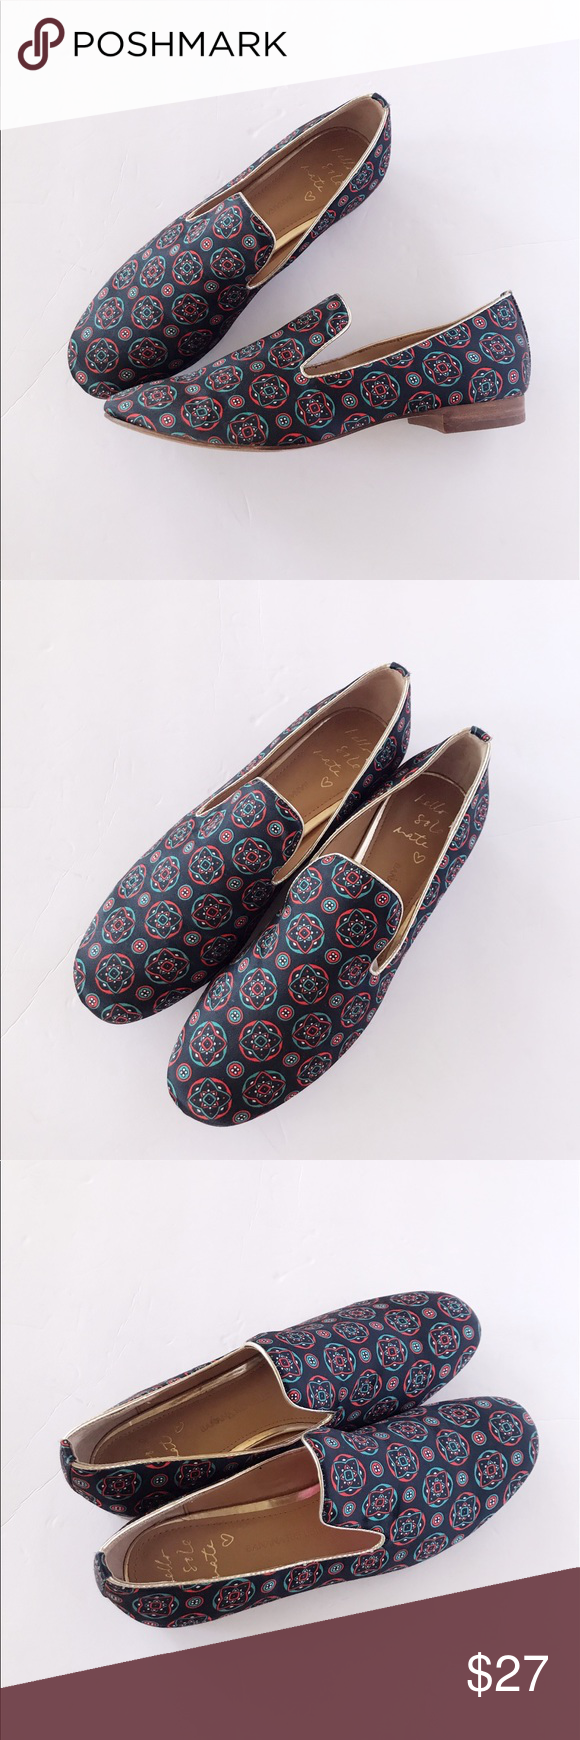 79d6cc0f412 ️BANANA REPUBLIC Silk Smoking Slipper In Excellent pre-owned condition.  Banana